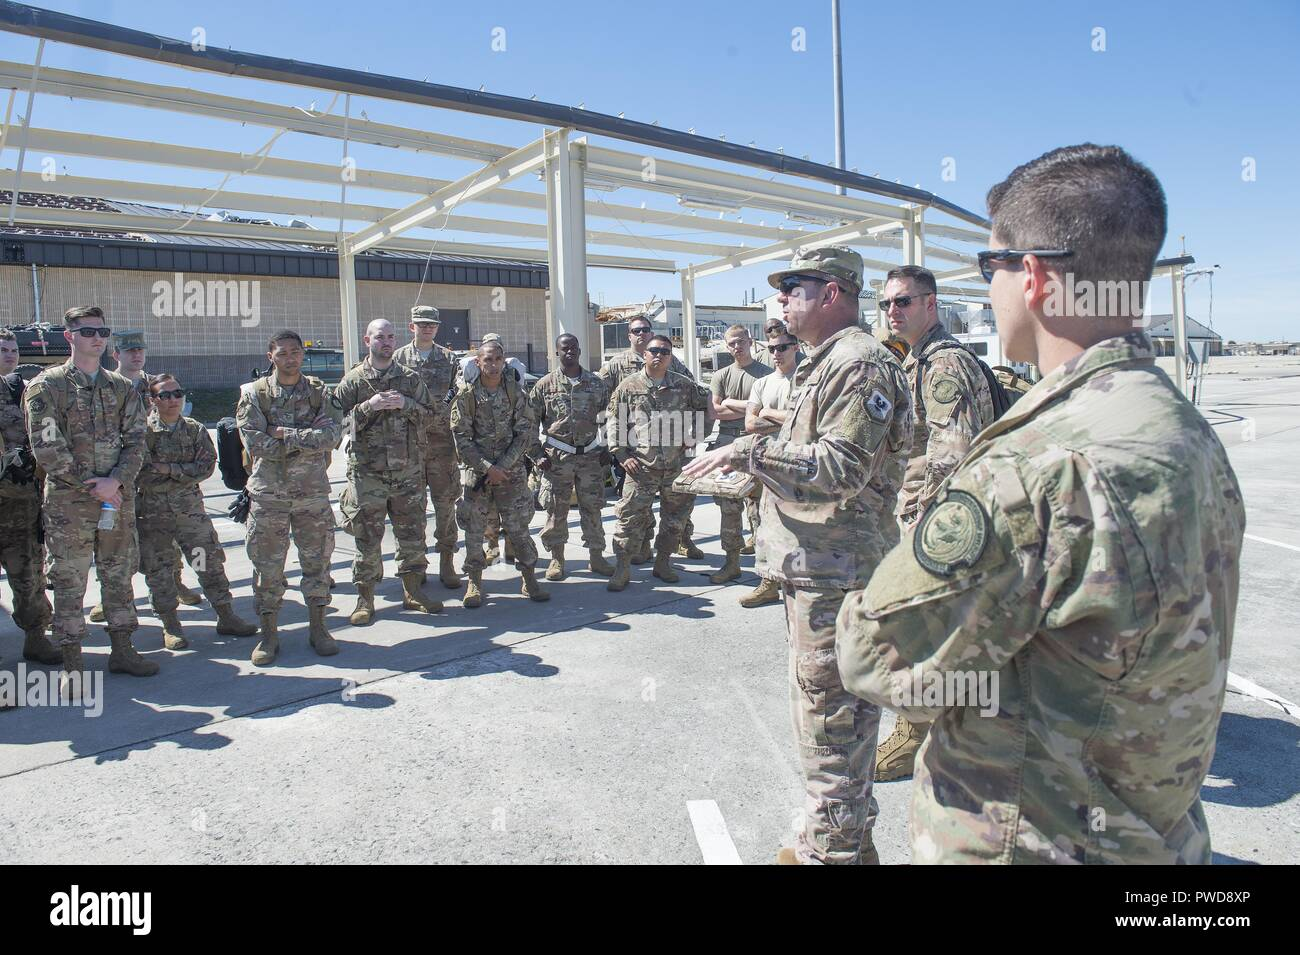 Col. Justin Niederer, 821st Contingency Response Group commander, provides an initial brief to his team prior to beginning hurricane relief operations at Tyndall Air Force Base, Florida, Oct. 12, 2018, October 12, 2018. The contingency response team deployed to assess damage and establish conditions for the re-initiation of airflow, bringing much needed equipment, supplies and personnel for the rebuilding of the base in the aftermath of Hurricane Michael. AMC equipment and personnel stand by across the nation to provide even more support upon request (U.S. Air Force photo by Tech. Sgt. Liliana - Stock Image